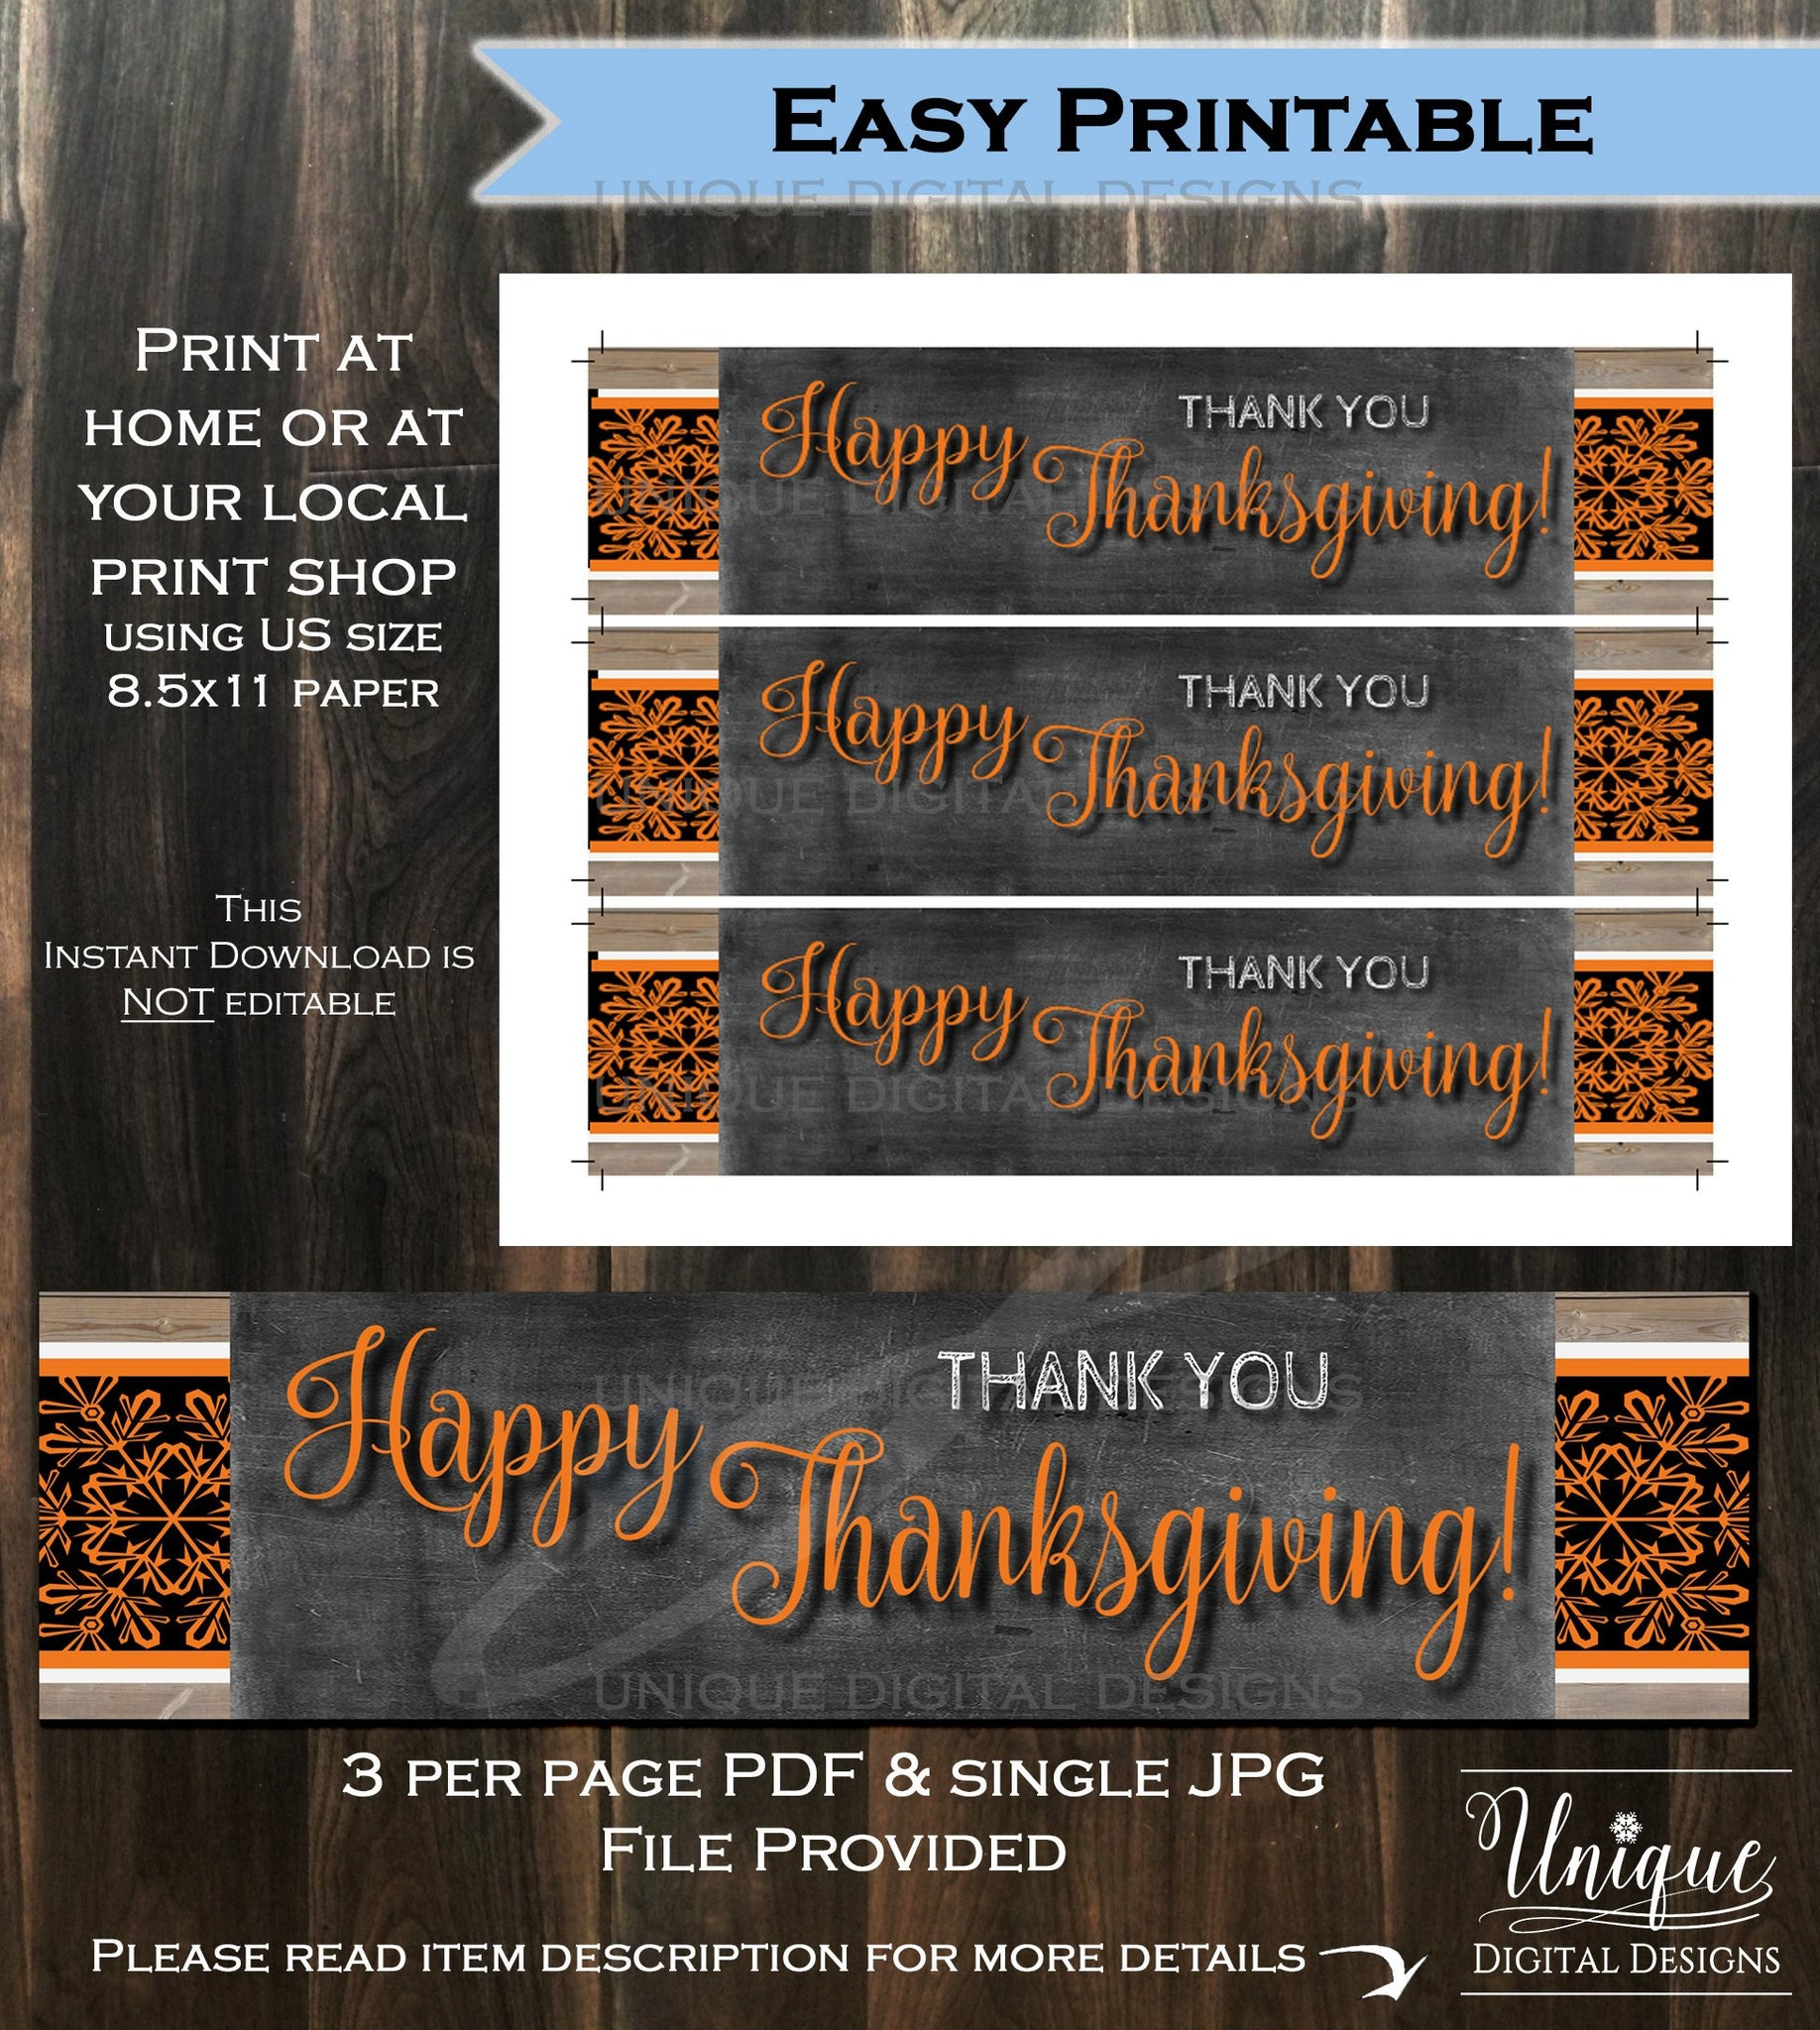 photograph relating to Thanksgiving Printable Decorations identify H2o Labels Beer Wrap Thanksgiving Meal decorations- Friendsgiving Feast Pumpkin Thank Yourself Tumble - Printable Electronic Record Fast Down load